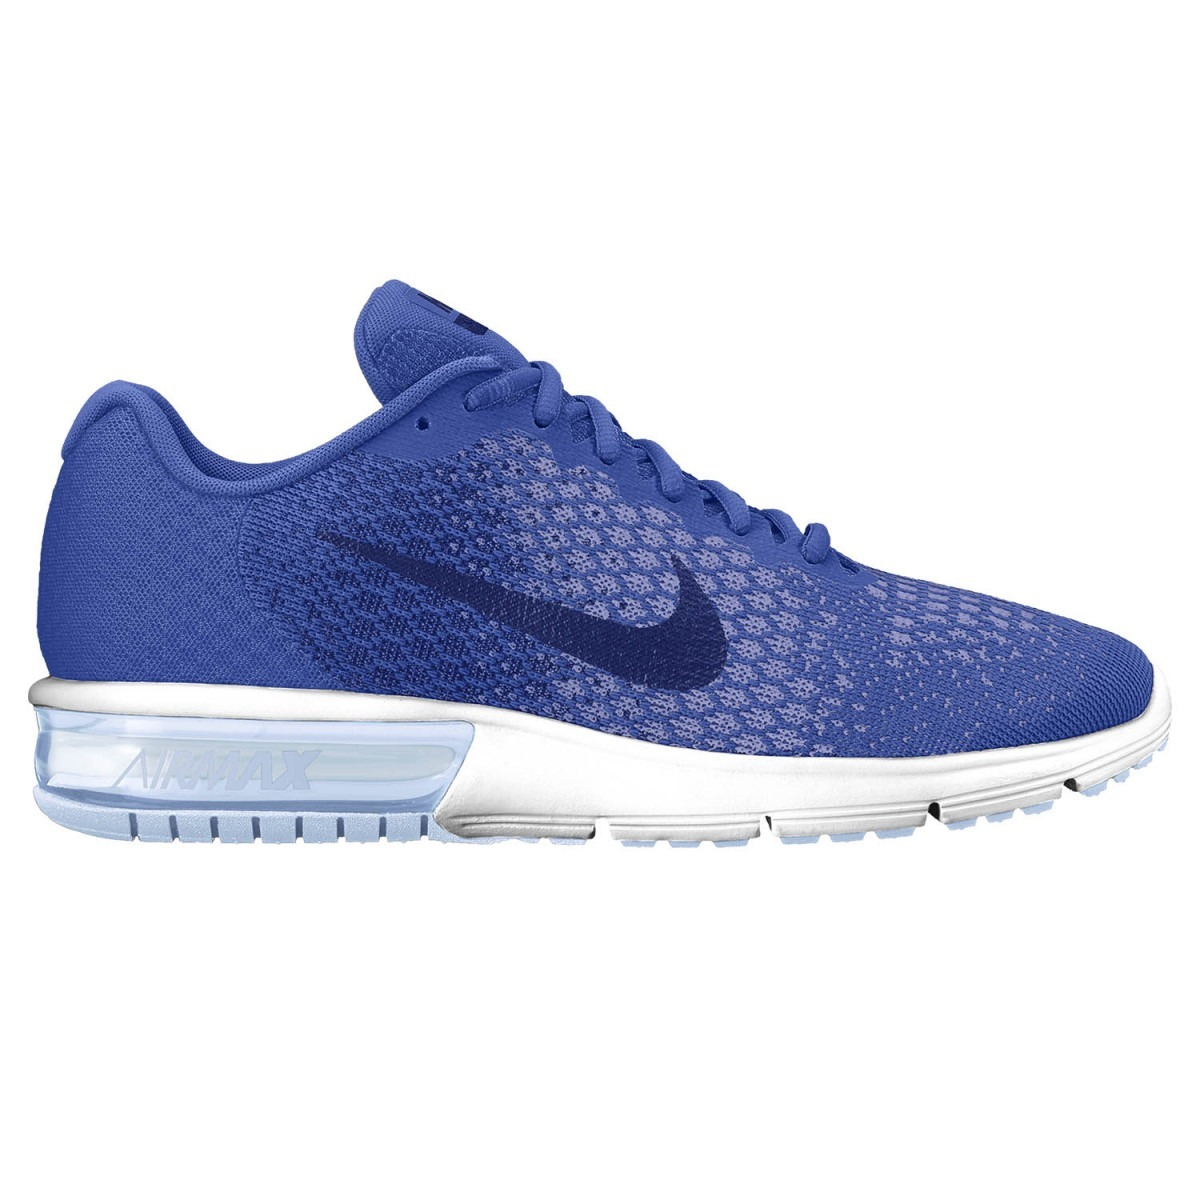 Adaptable Nike Air Max Sequent 2 Legion Blue Black Smokey Blue White 852461 402 Men's Casual Shoes Sneakers 852461 402